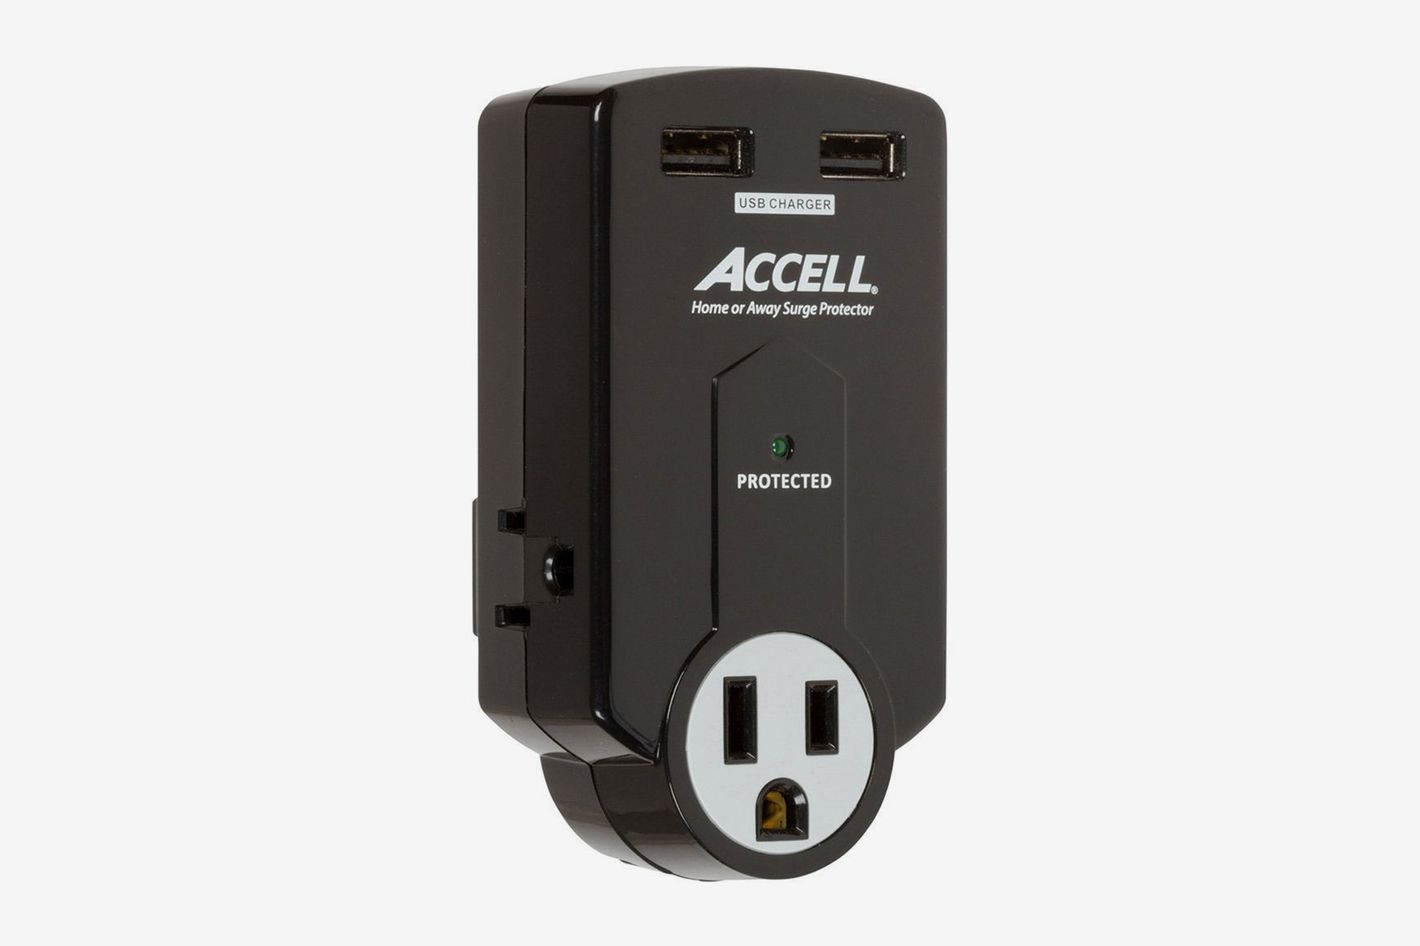 Accell 3-Outlet Travel Surge Protector